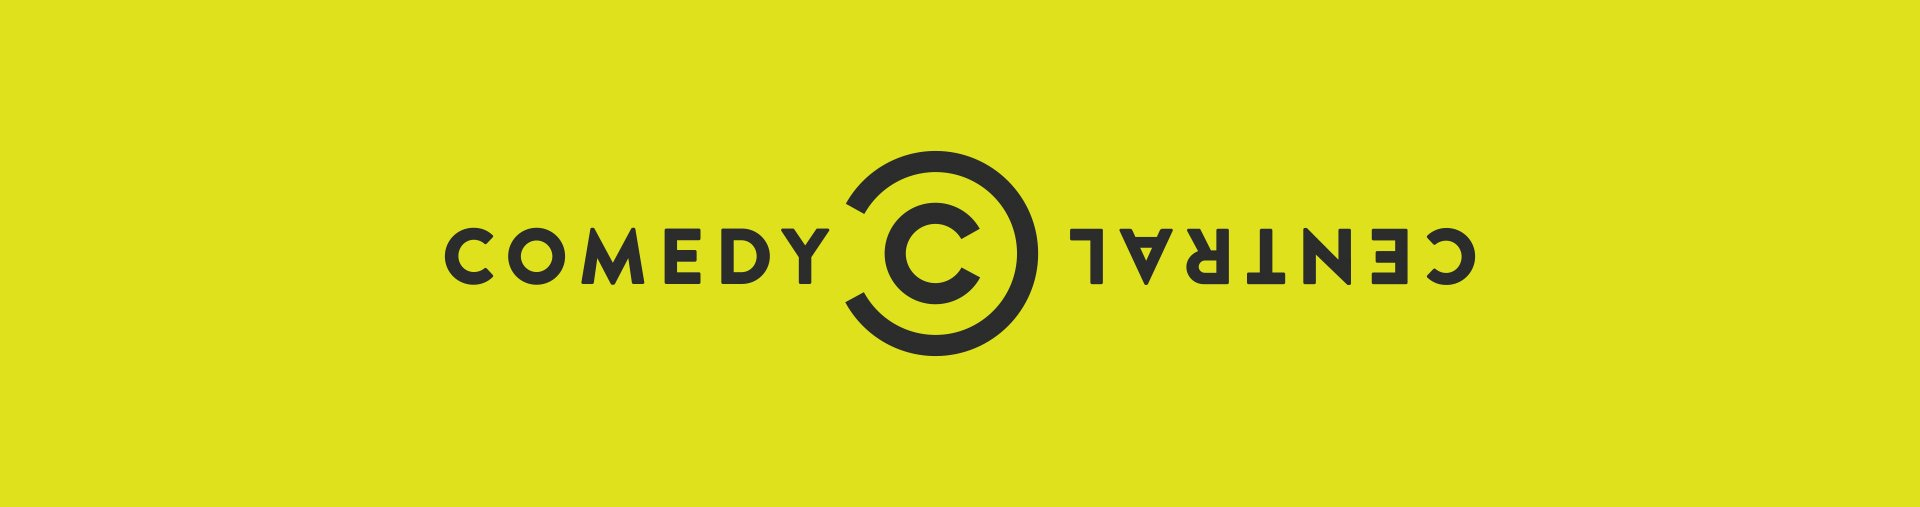 Comedy Central logo lime